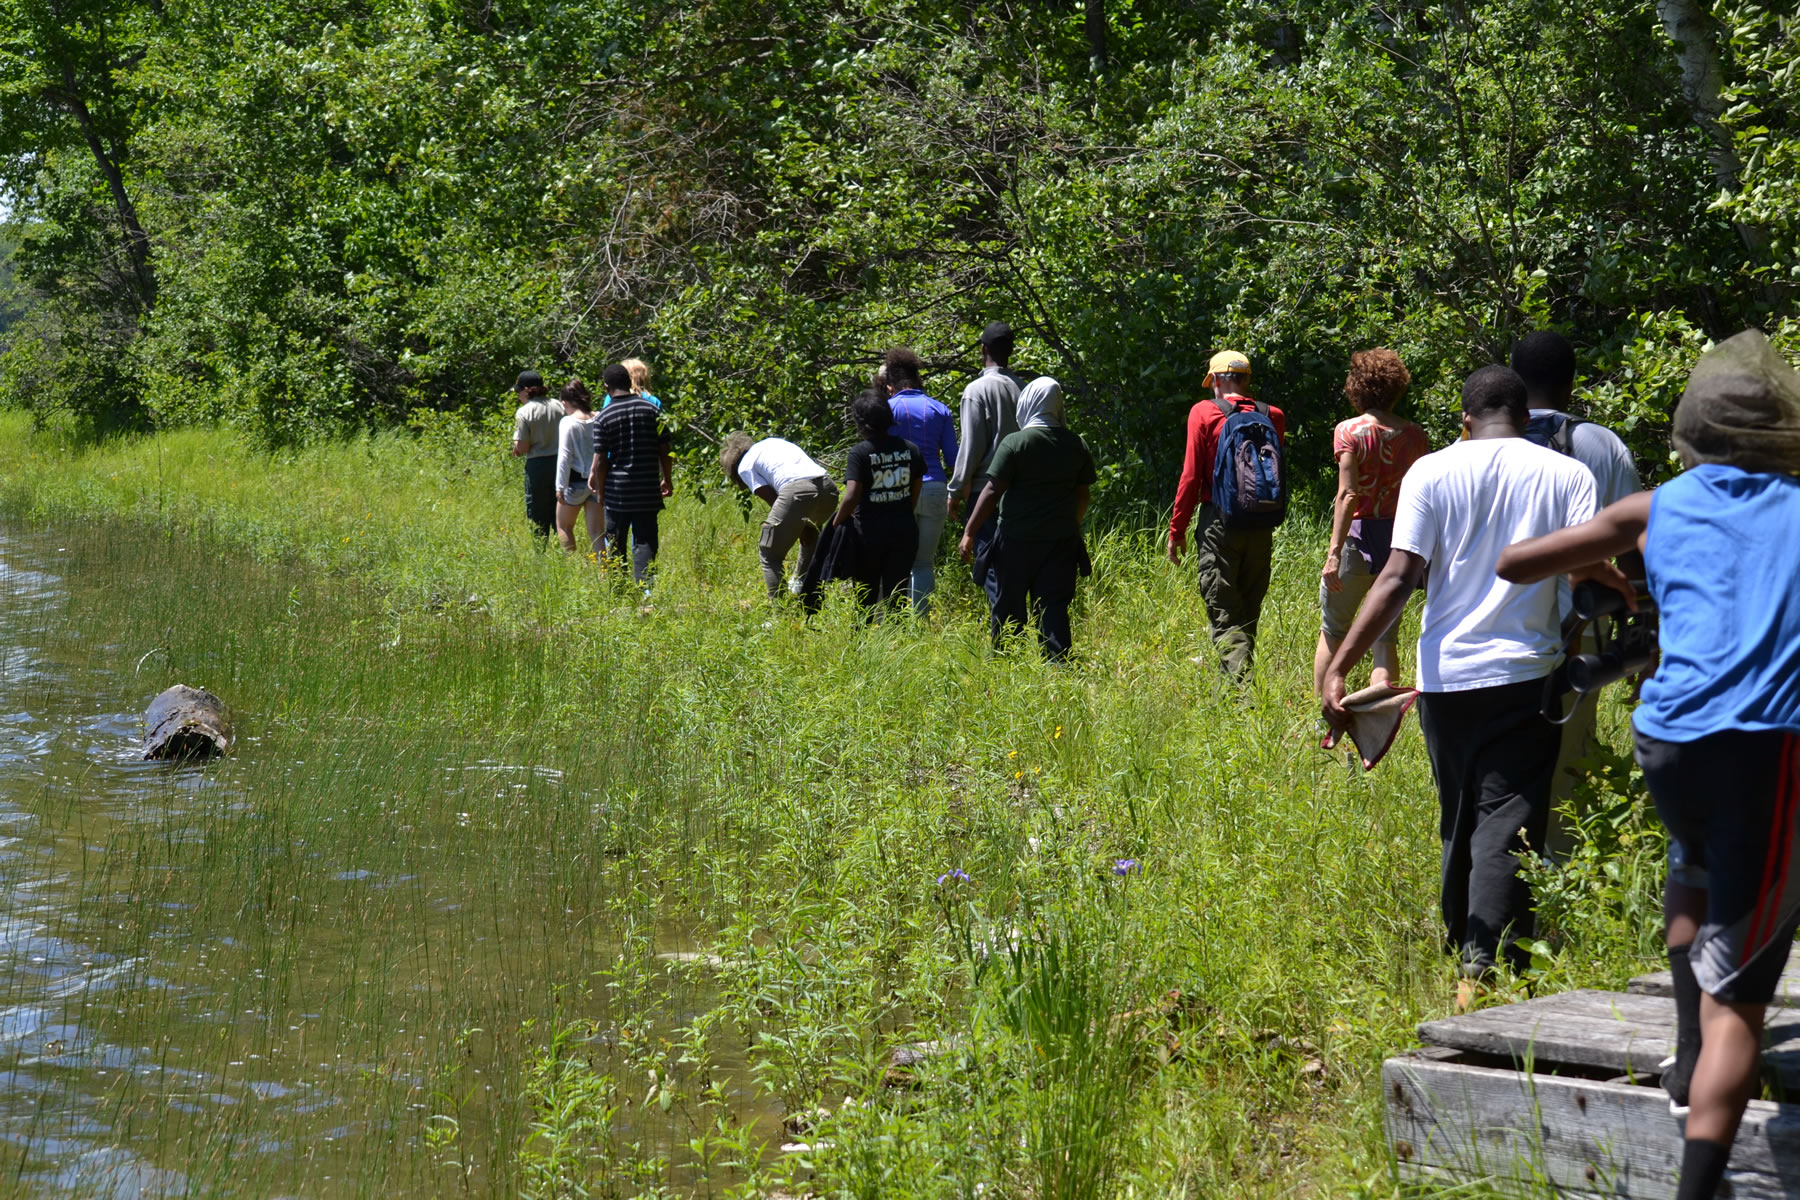 A group of young people from Detroit walk a somewhat unfamiliar path along the shoreline of Clear Lake on the Hiawatha National Forest in Michigan.